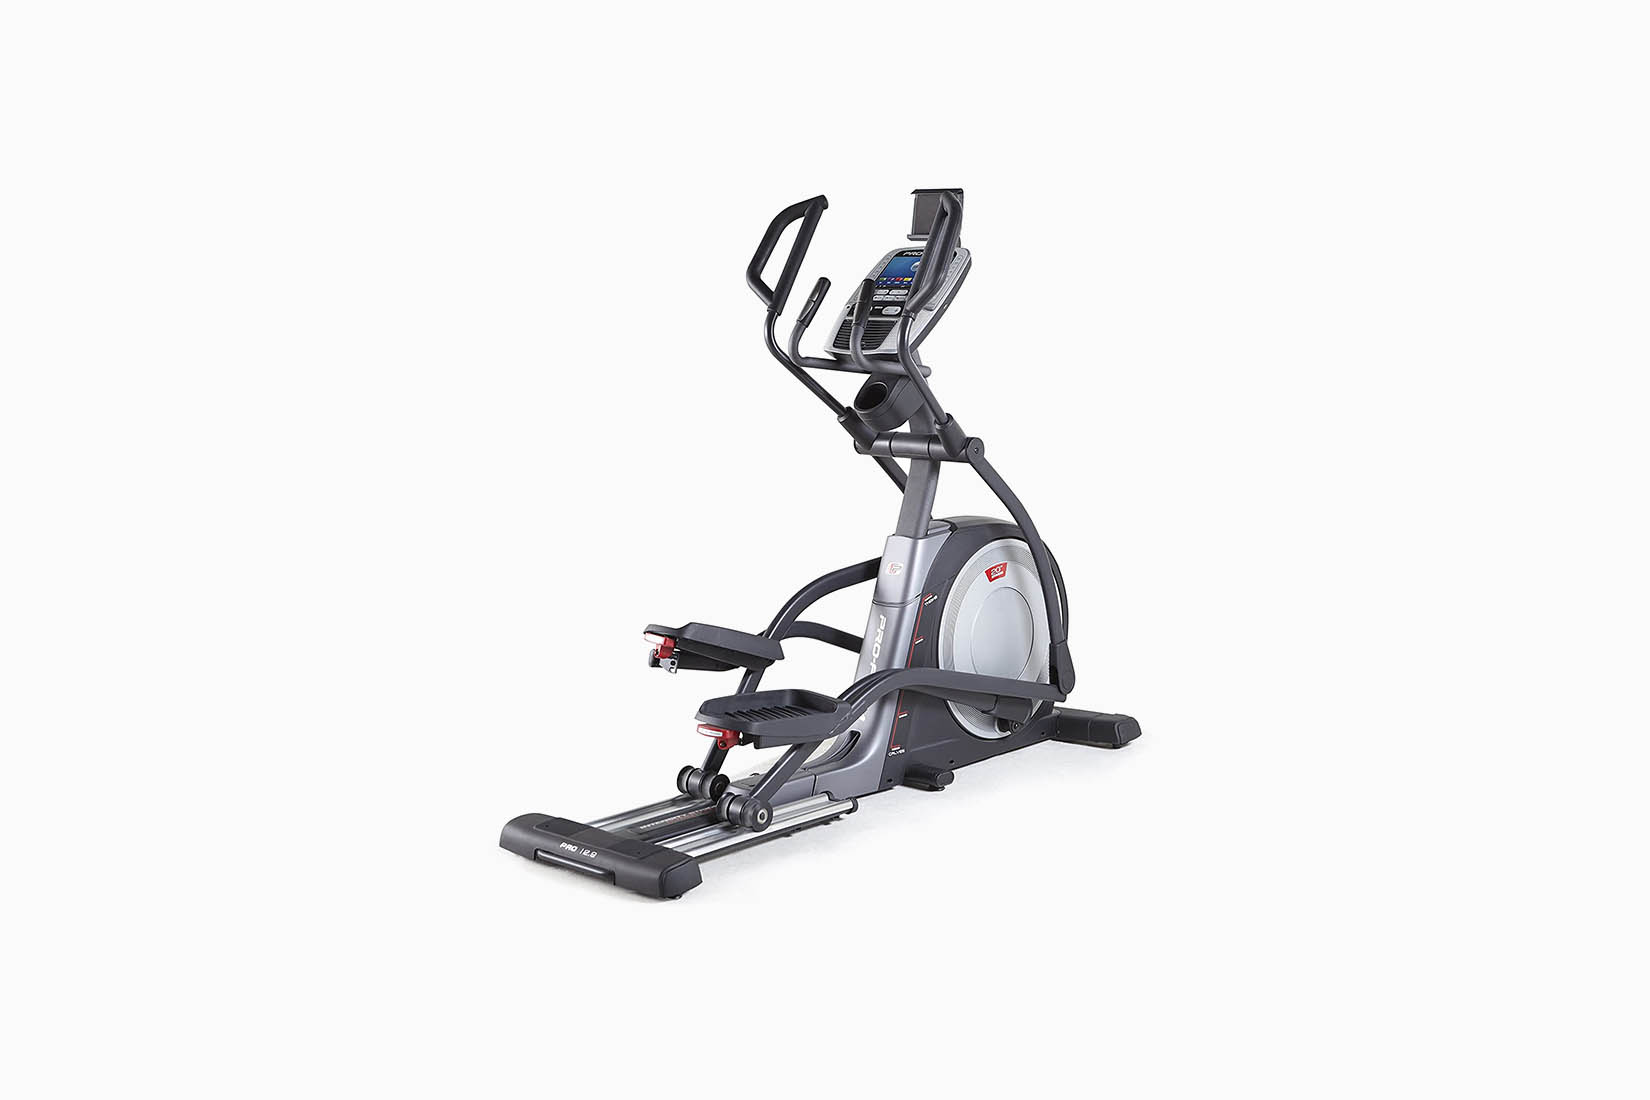 best home gym equipment proform review - luxe digital